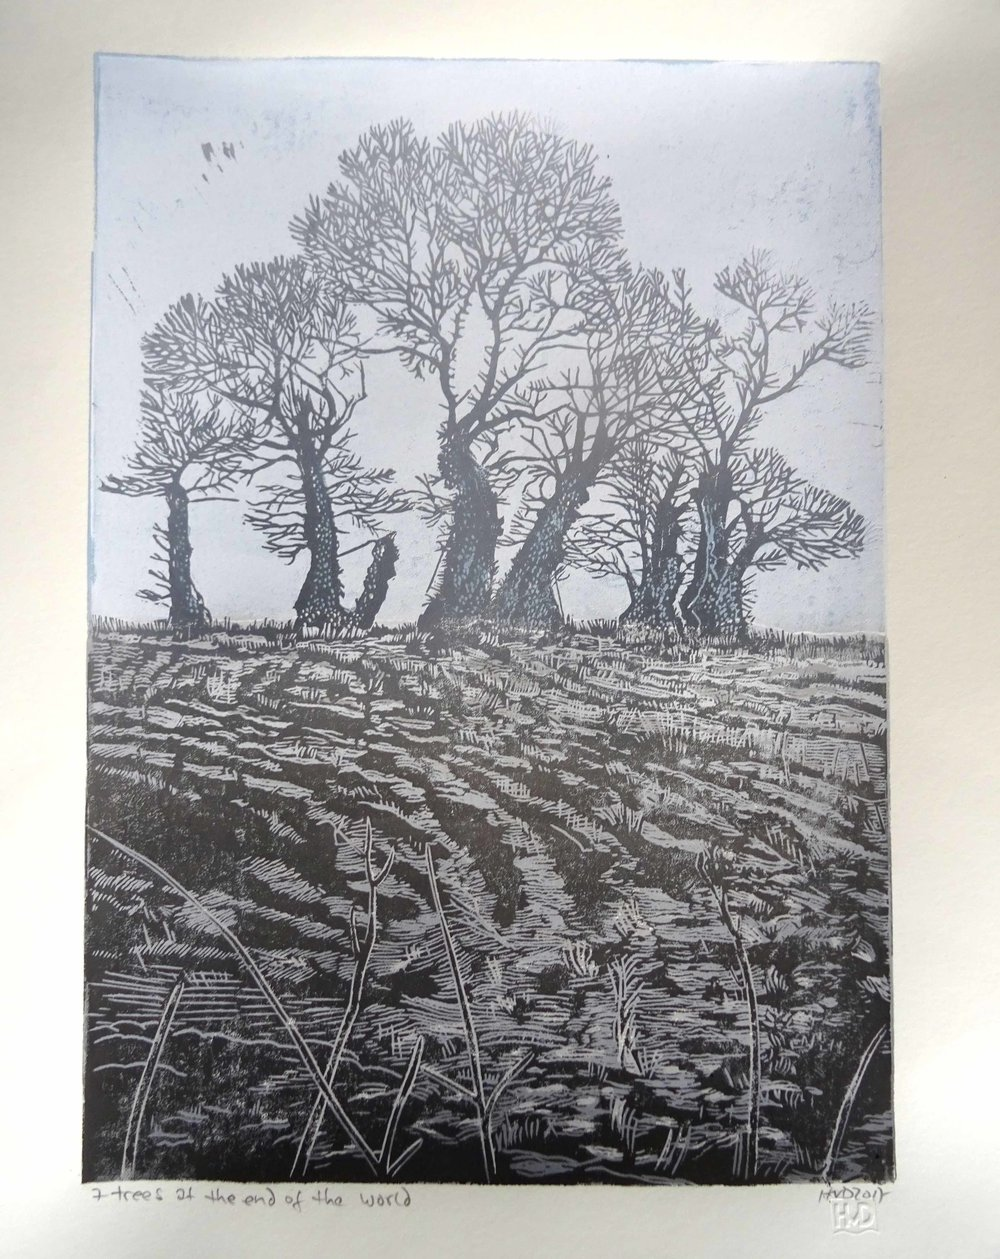 208, 7 trees at the end of the world, 42x30 cm, 3-plate lino